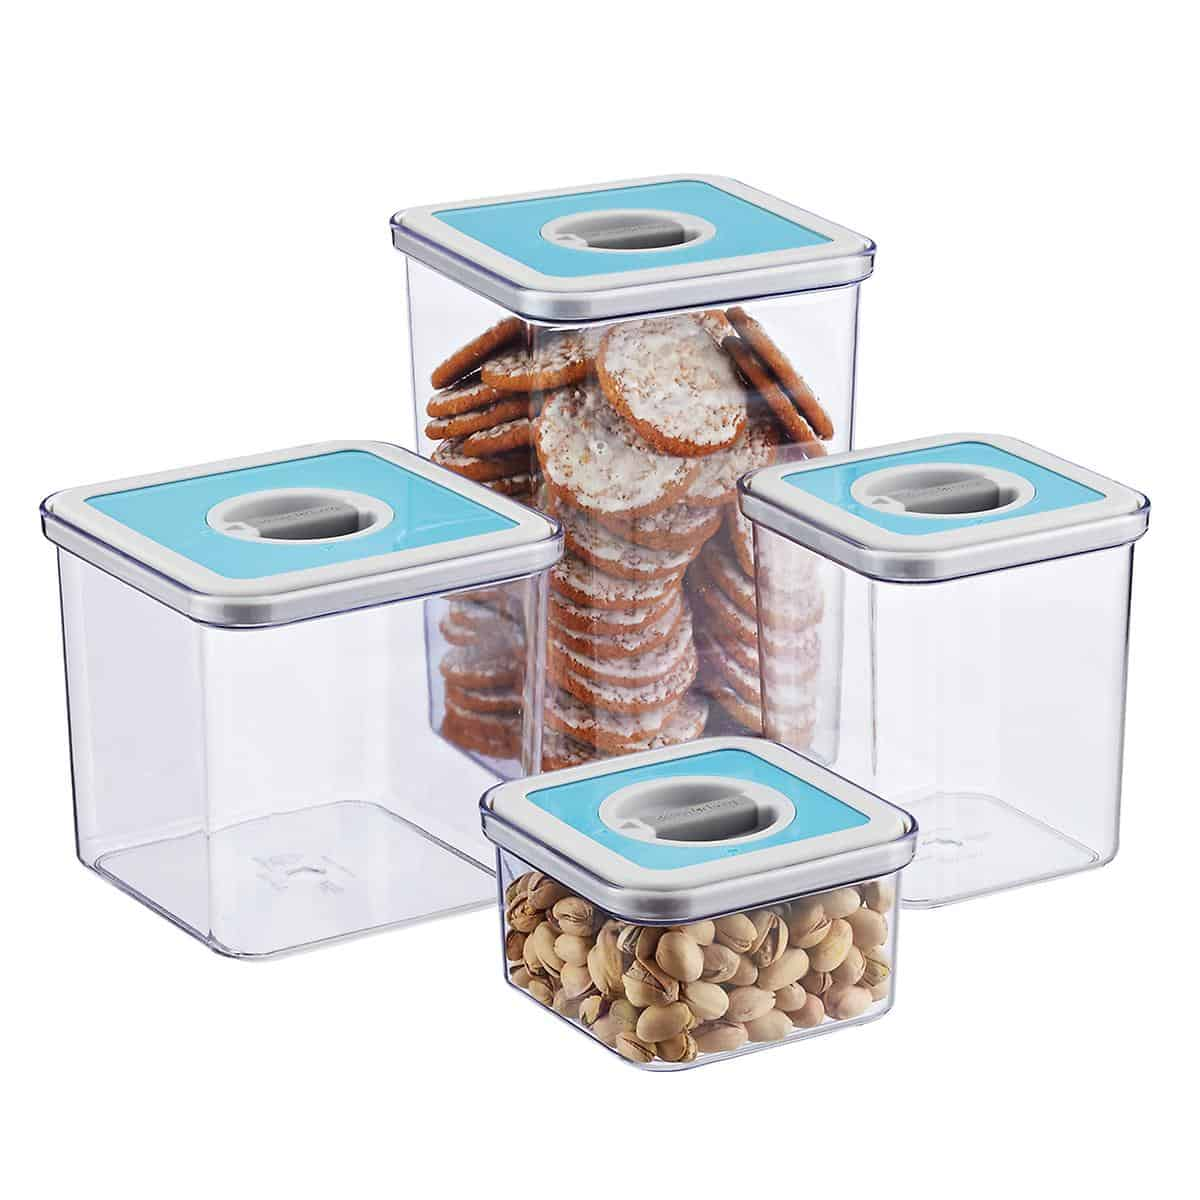 Food canisters.